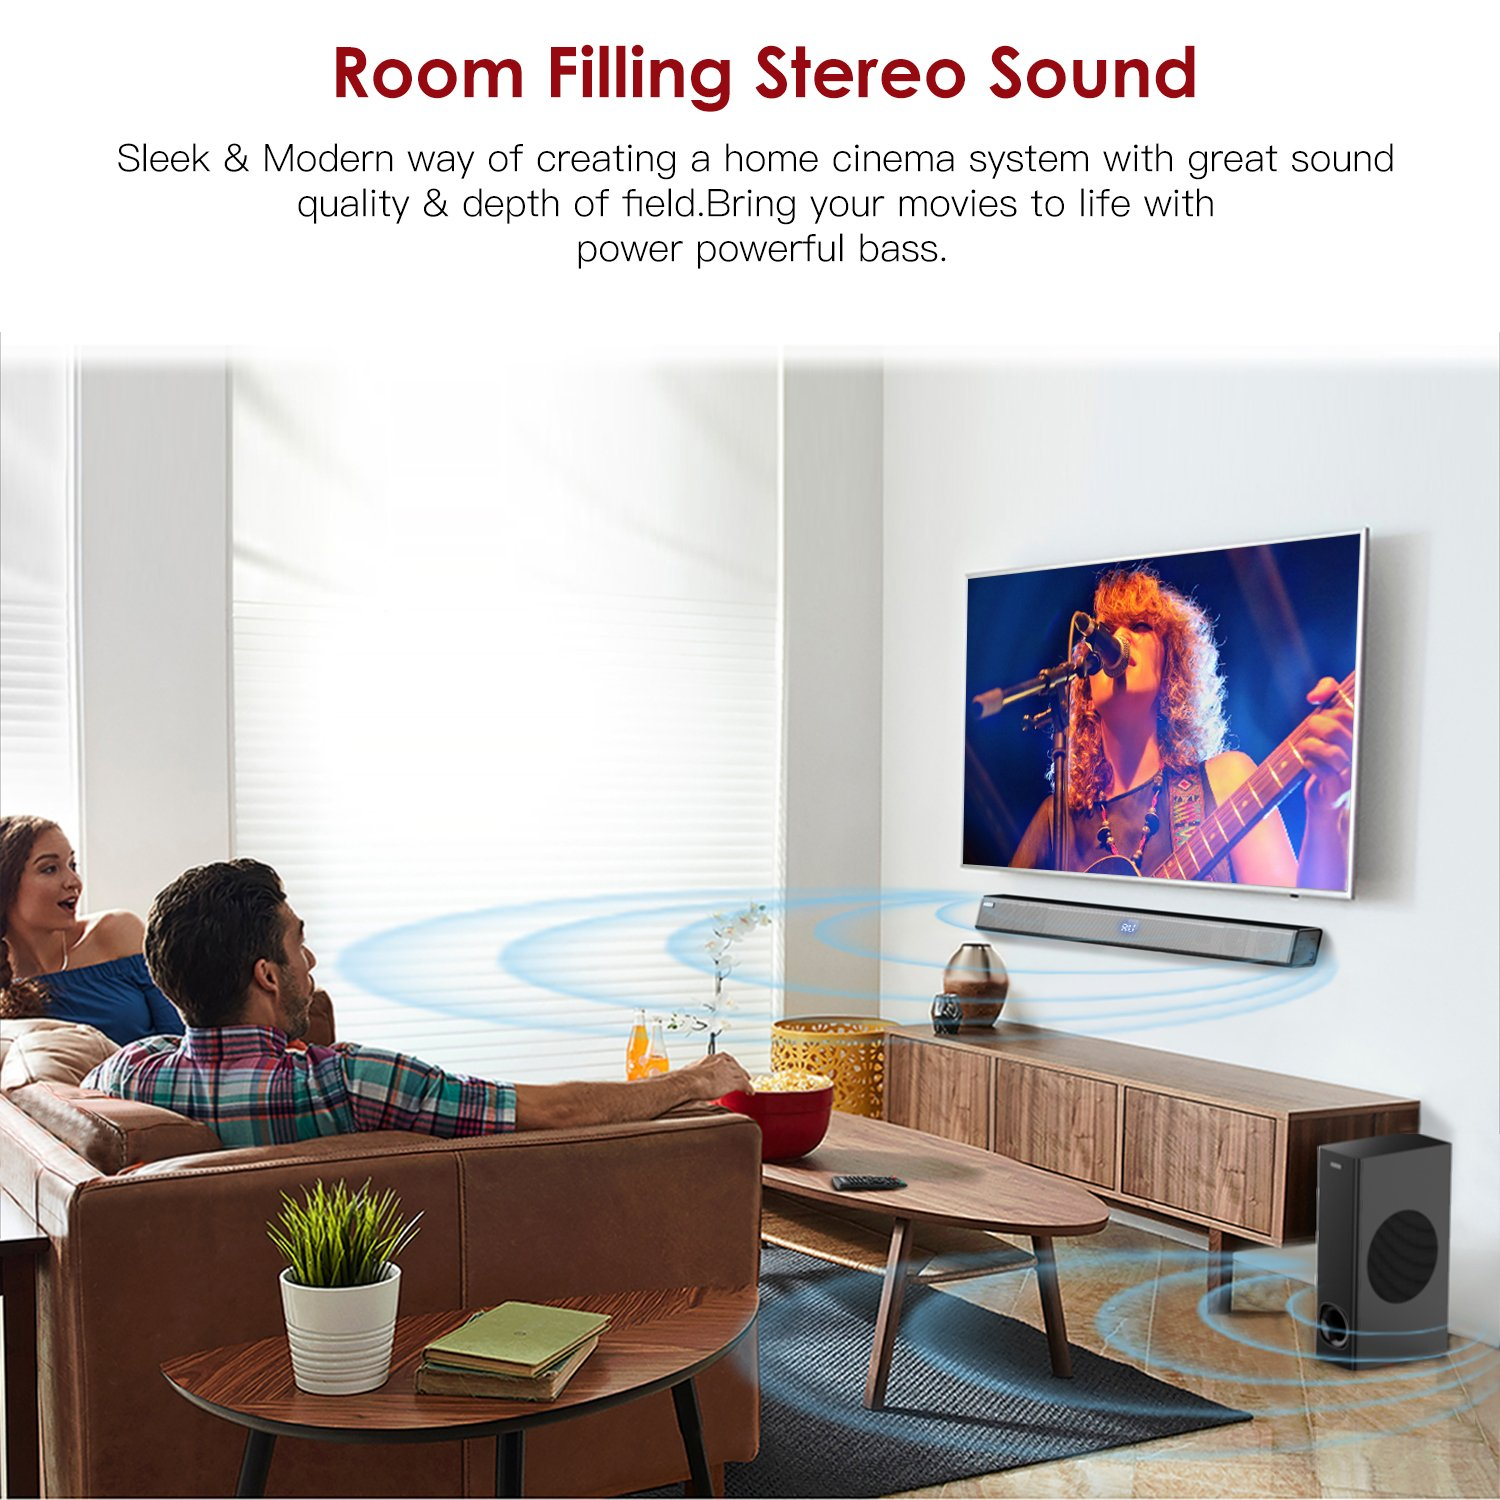 Sound Bar with Subwoofer, ABOX Soundbar for TV 34 Inch 120W 2.1 Channel Speaker, Wireless & Wired Bluetooth 4.2 Sound Bars, Home Theater Surround Sound, Touch and Remote Control, Wall Mountable by GooBang Doo (Image #7)